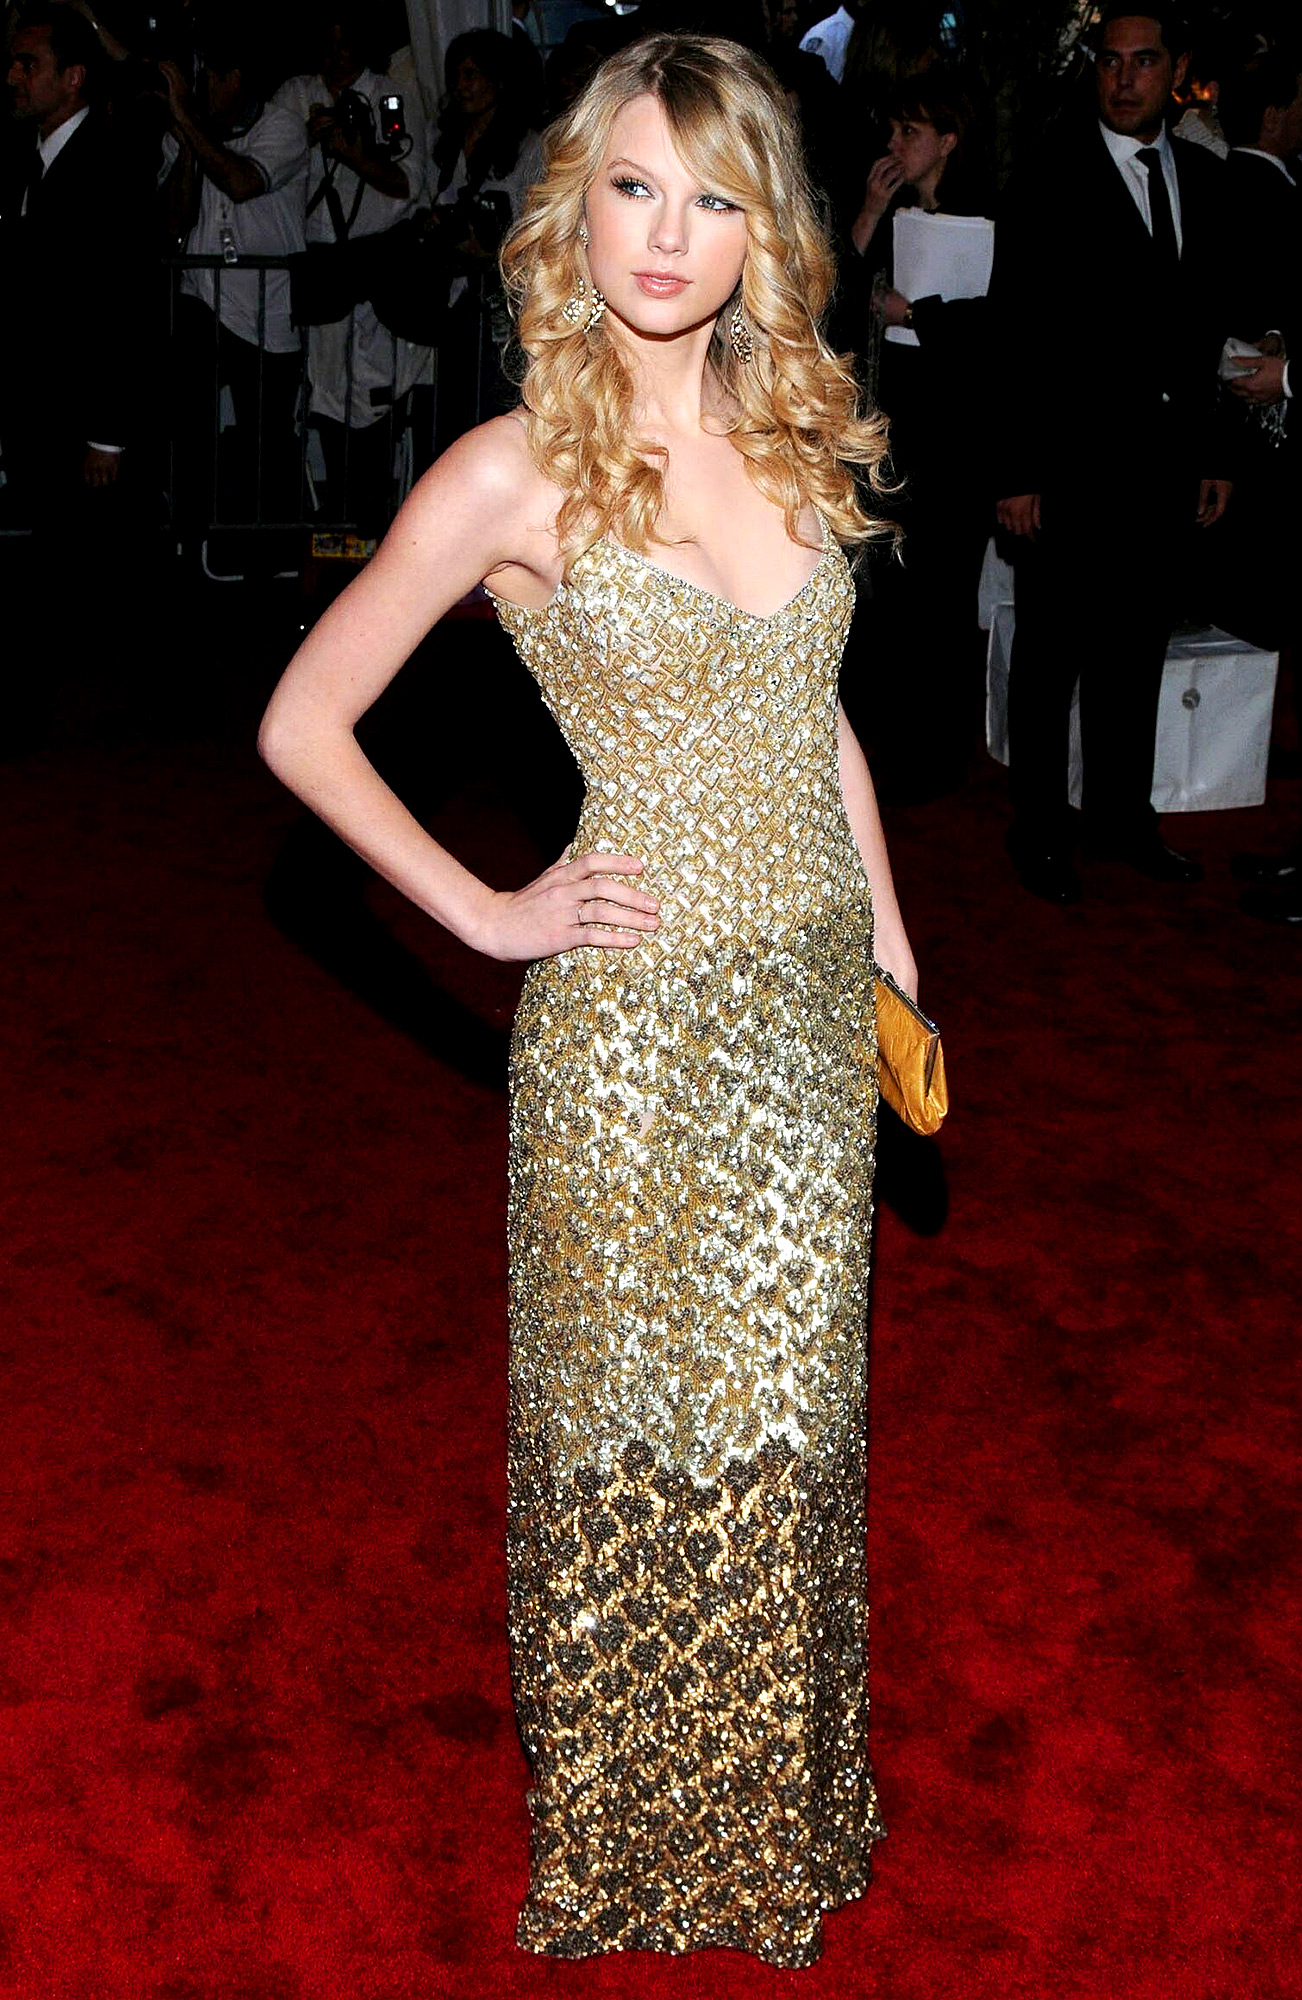 'Superheroes: Fashion and Fantasy' Costume Institute Gala at The Metropolitan Museum of Art, New York, America - 05 May 2008